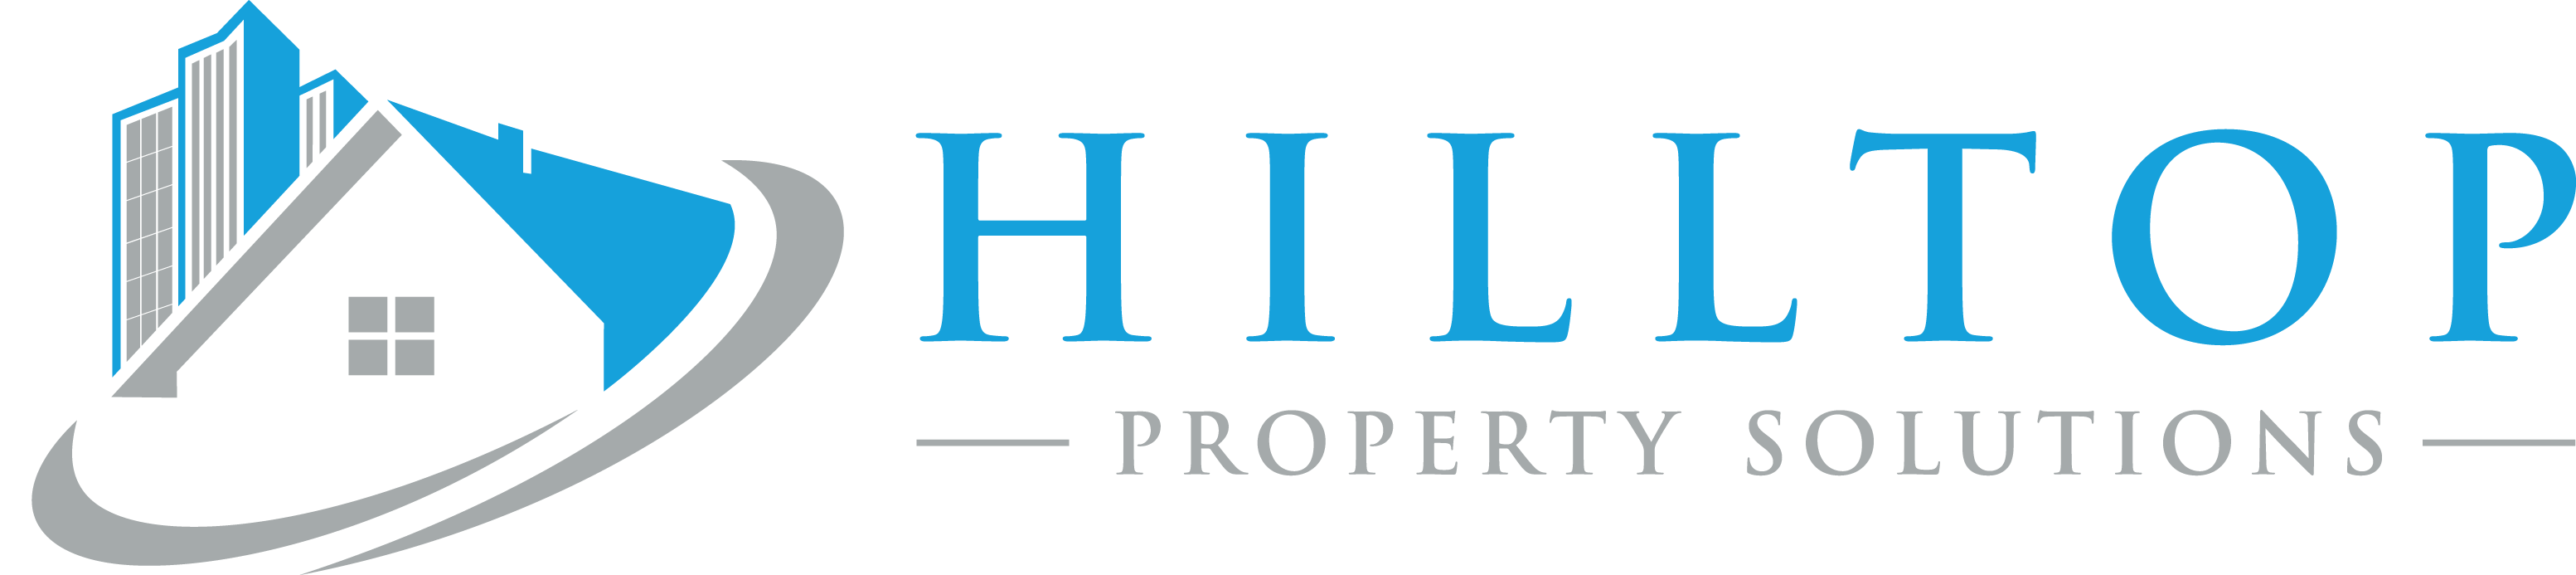 Hilltop Property Solutions Master